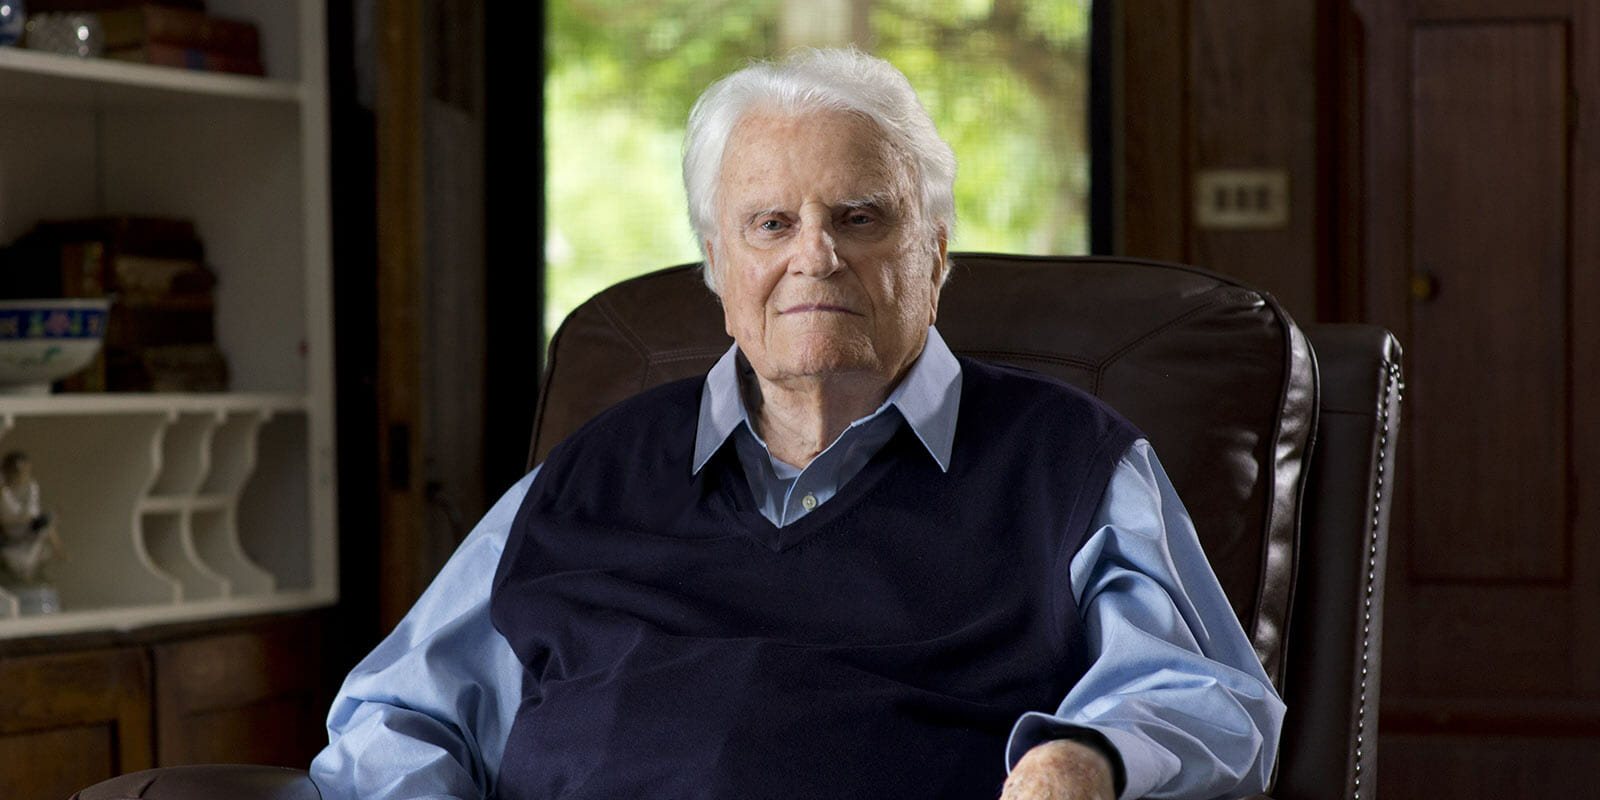 Billy Graham's Funeral – Video if you Missed It